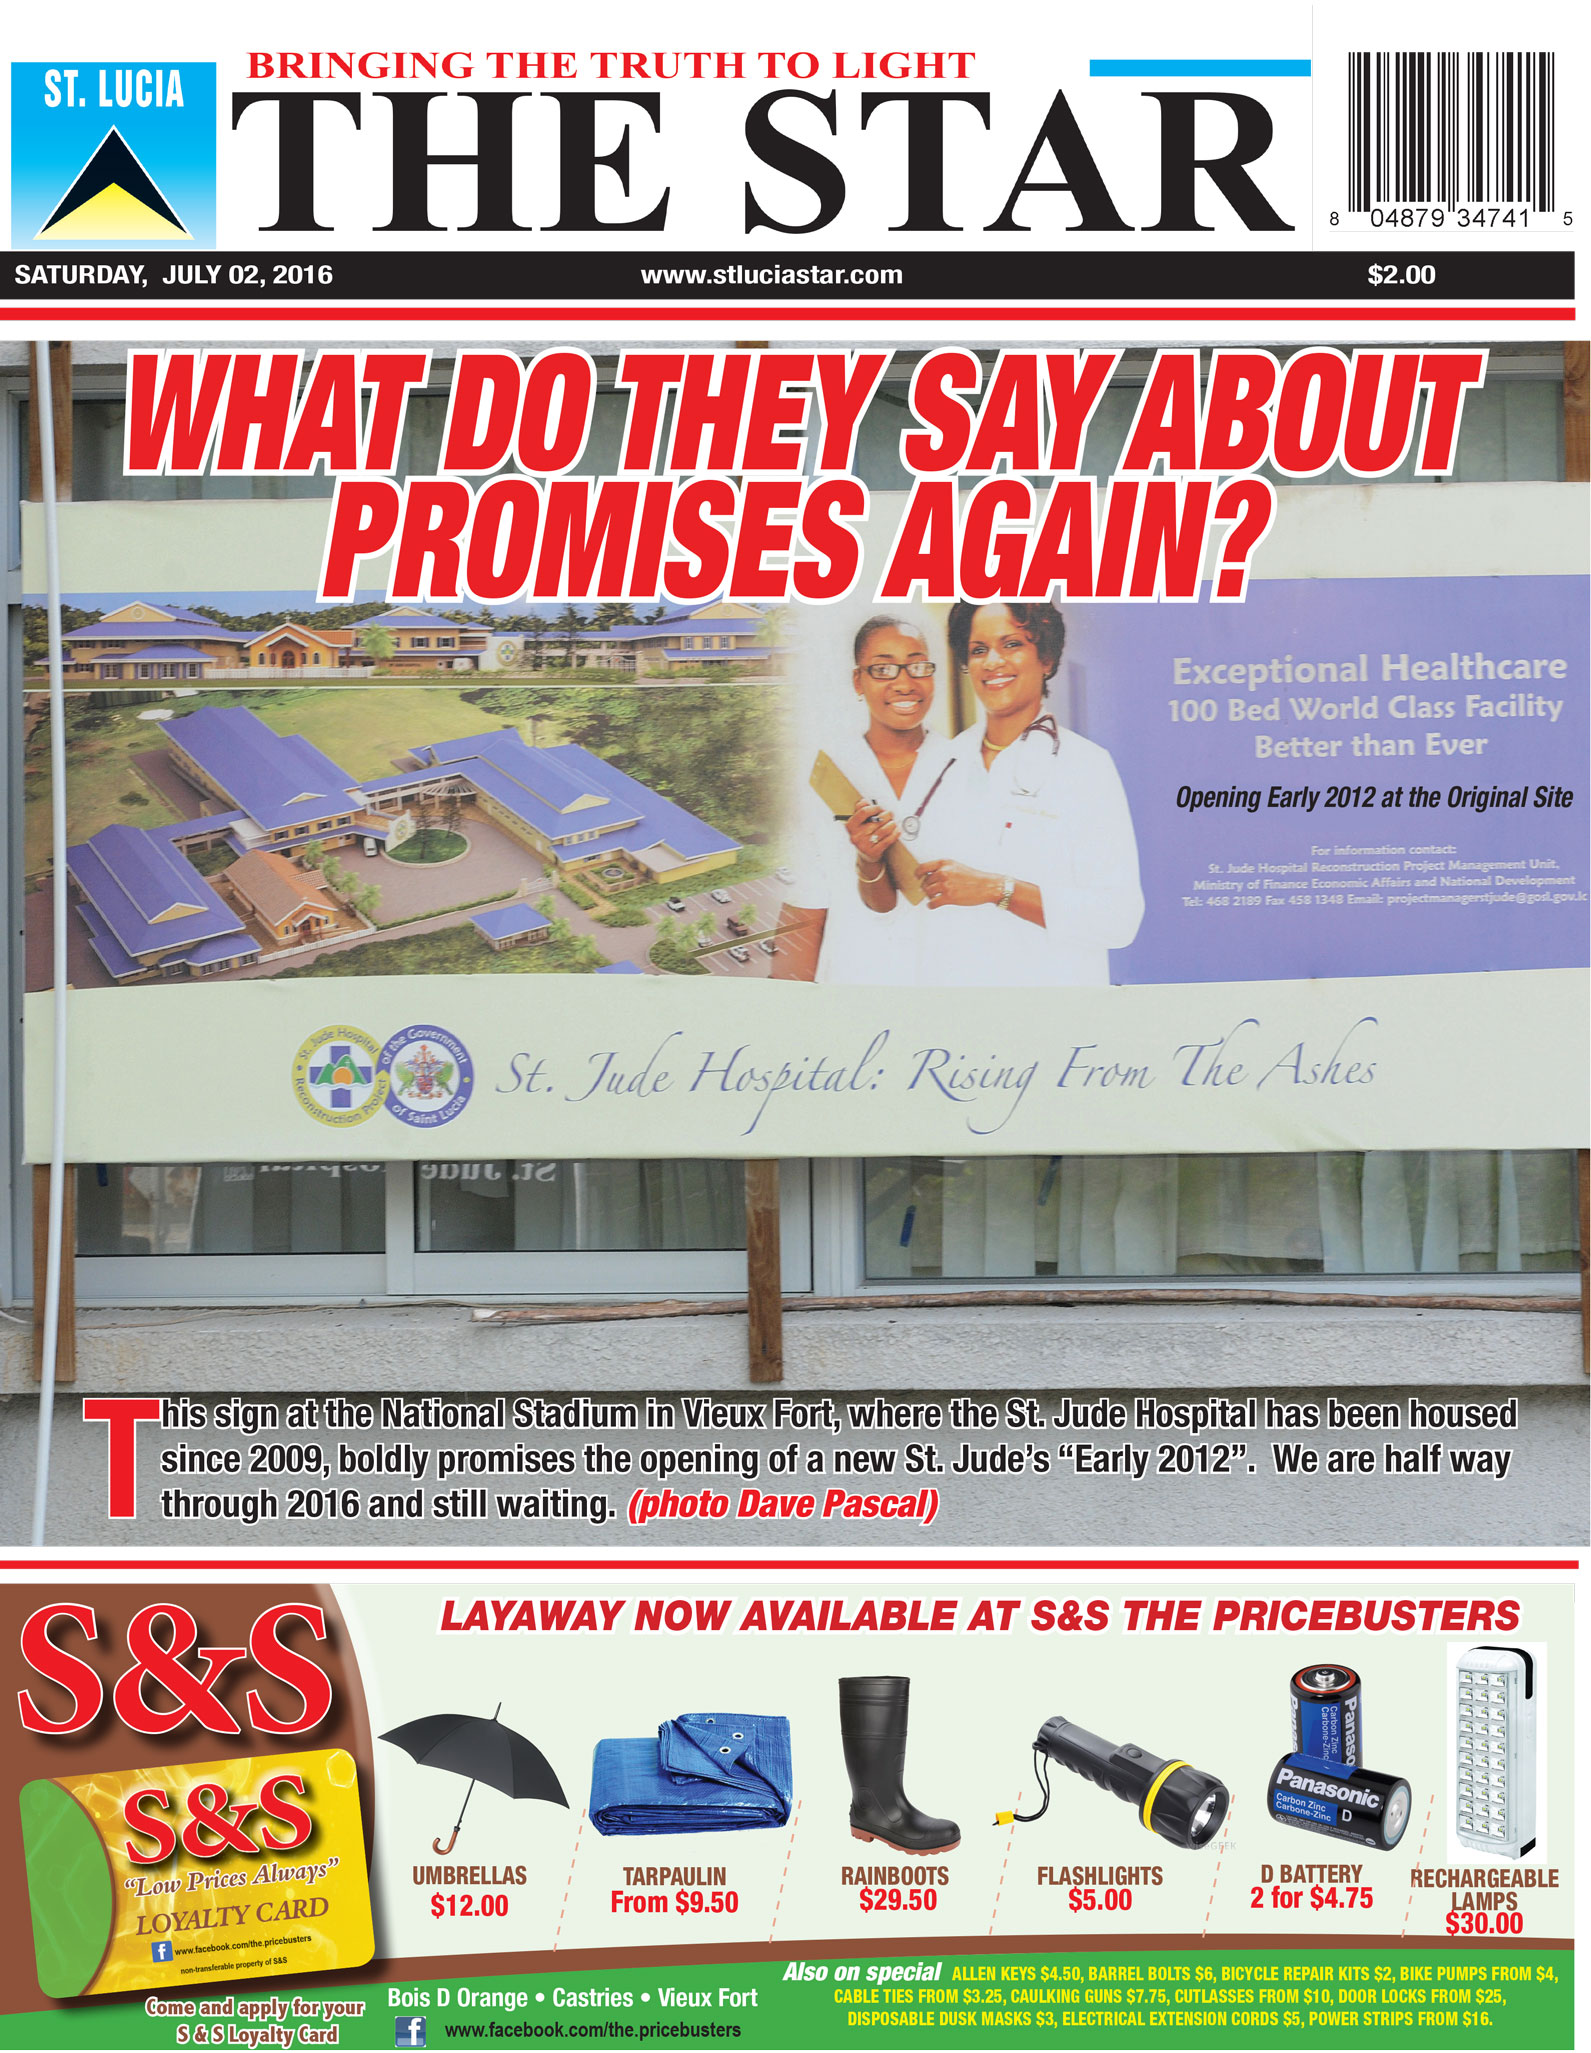 The STAR Newspaper for Saturday  July 2nd, 2016